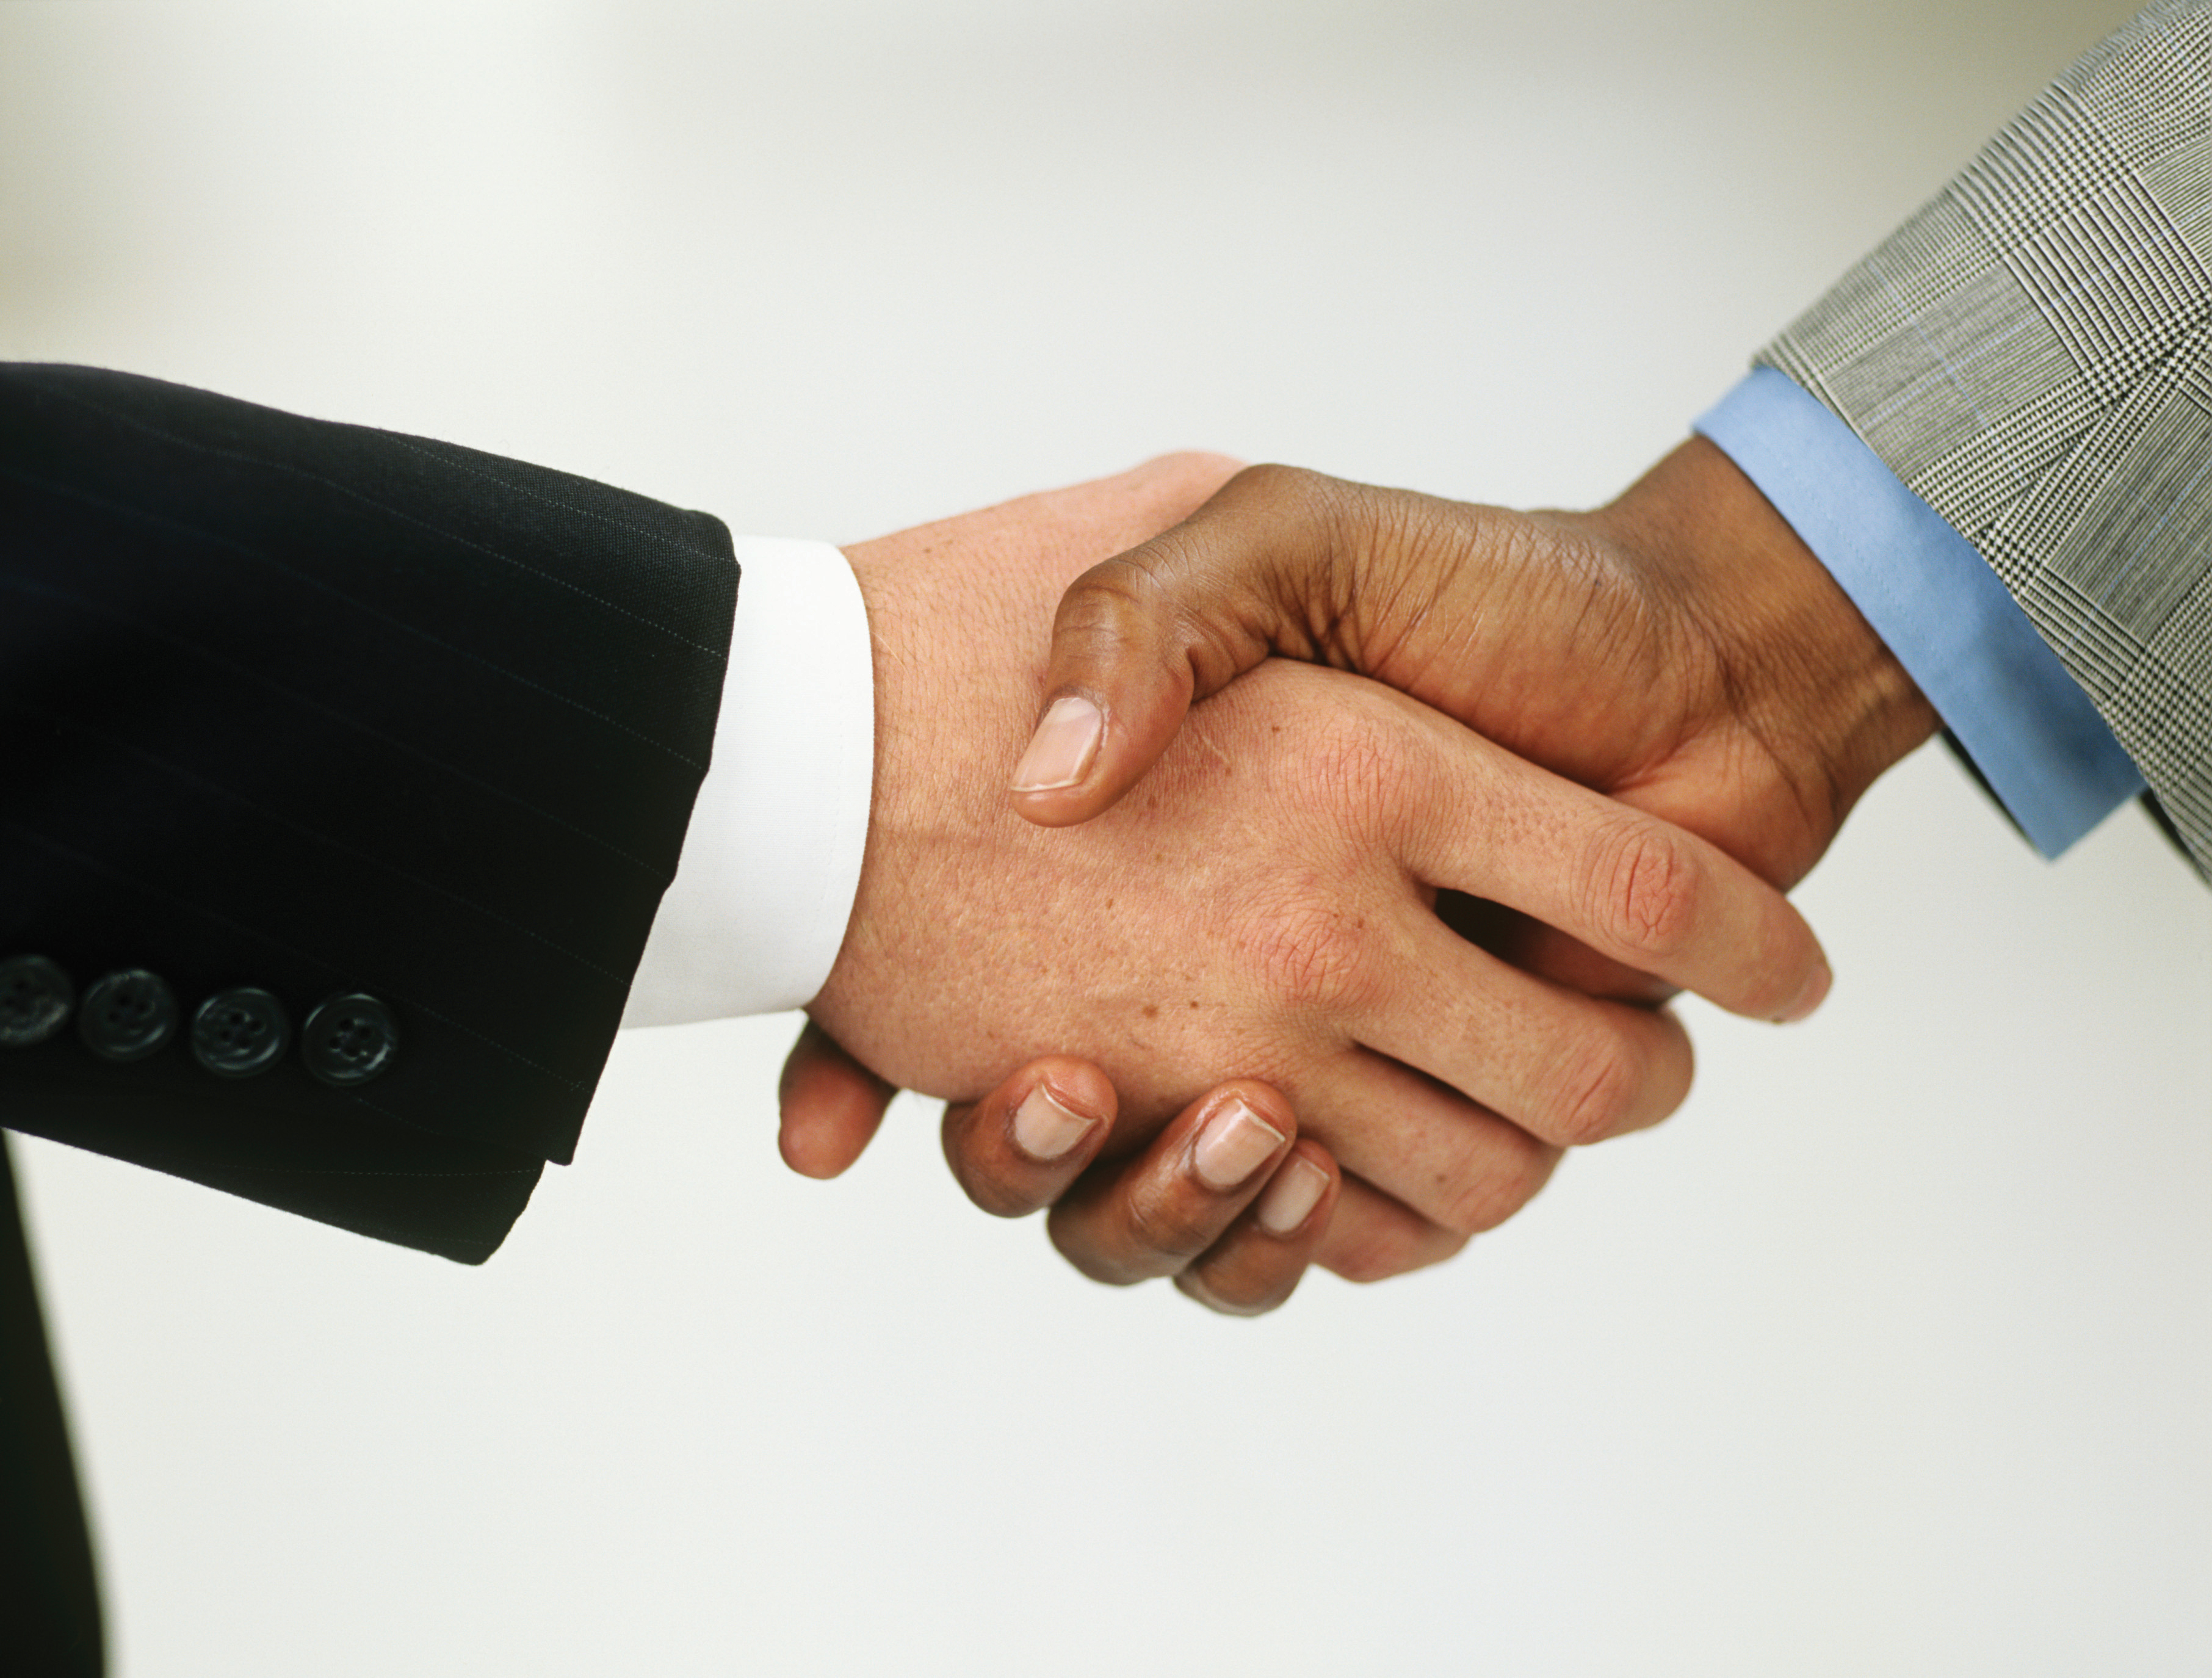 Black And White People Shaking Hands